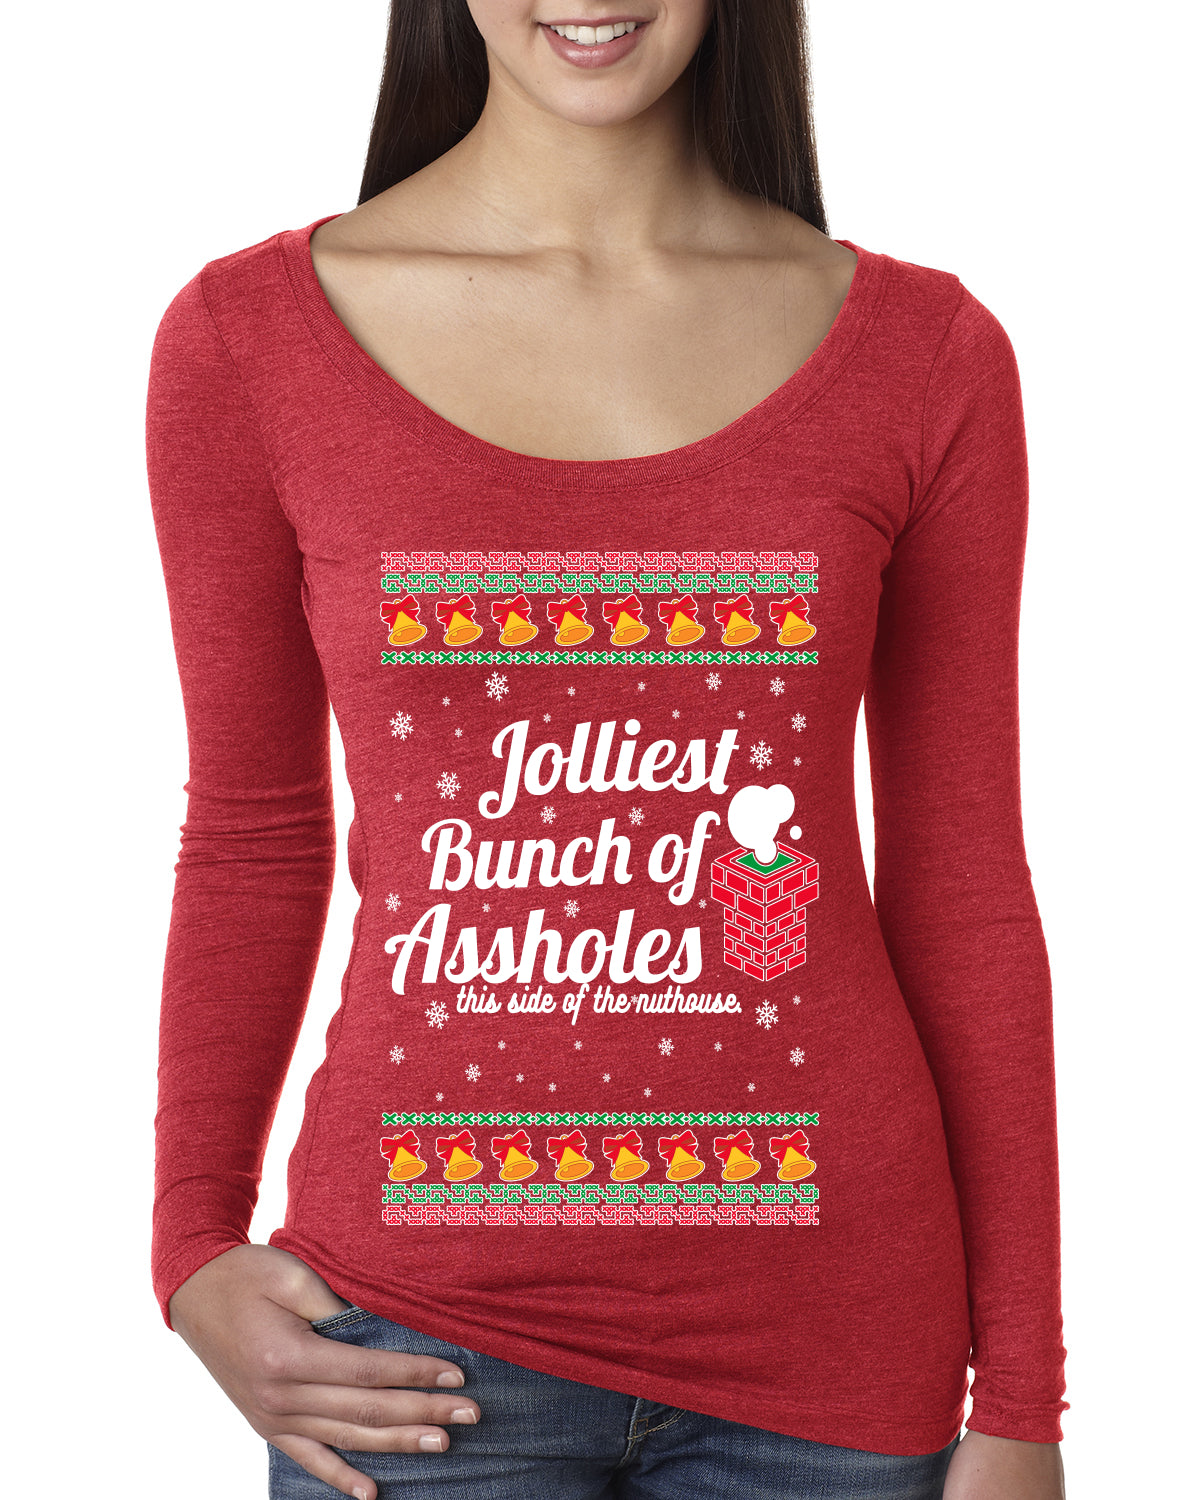 Jolliest Bunch of Assholes Xmas Movie Ugly Christmas Sweater Womens Scoop Long Sleeve Top